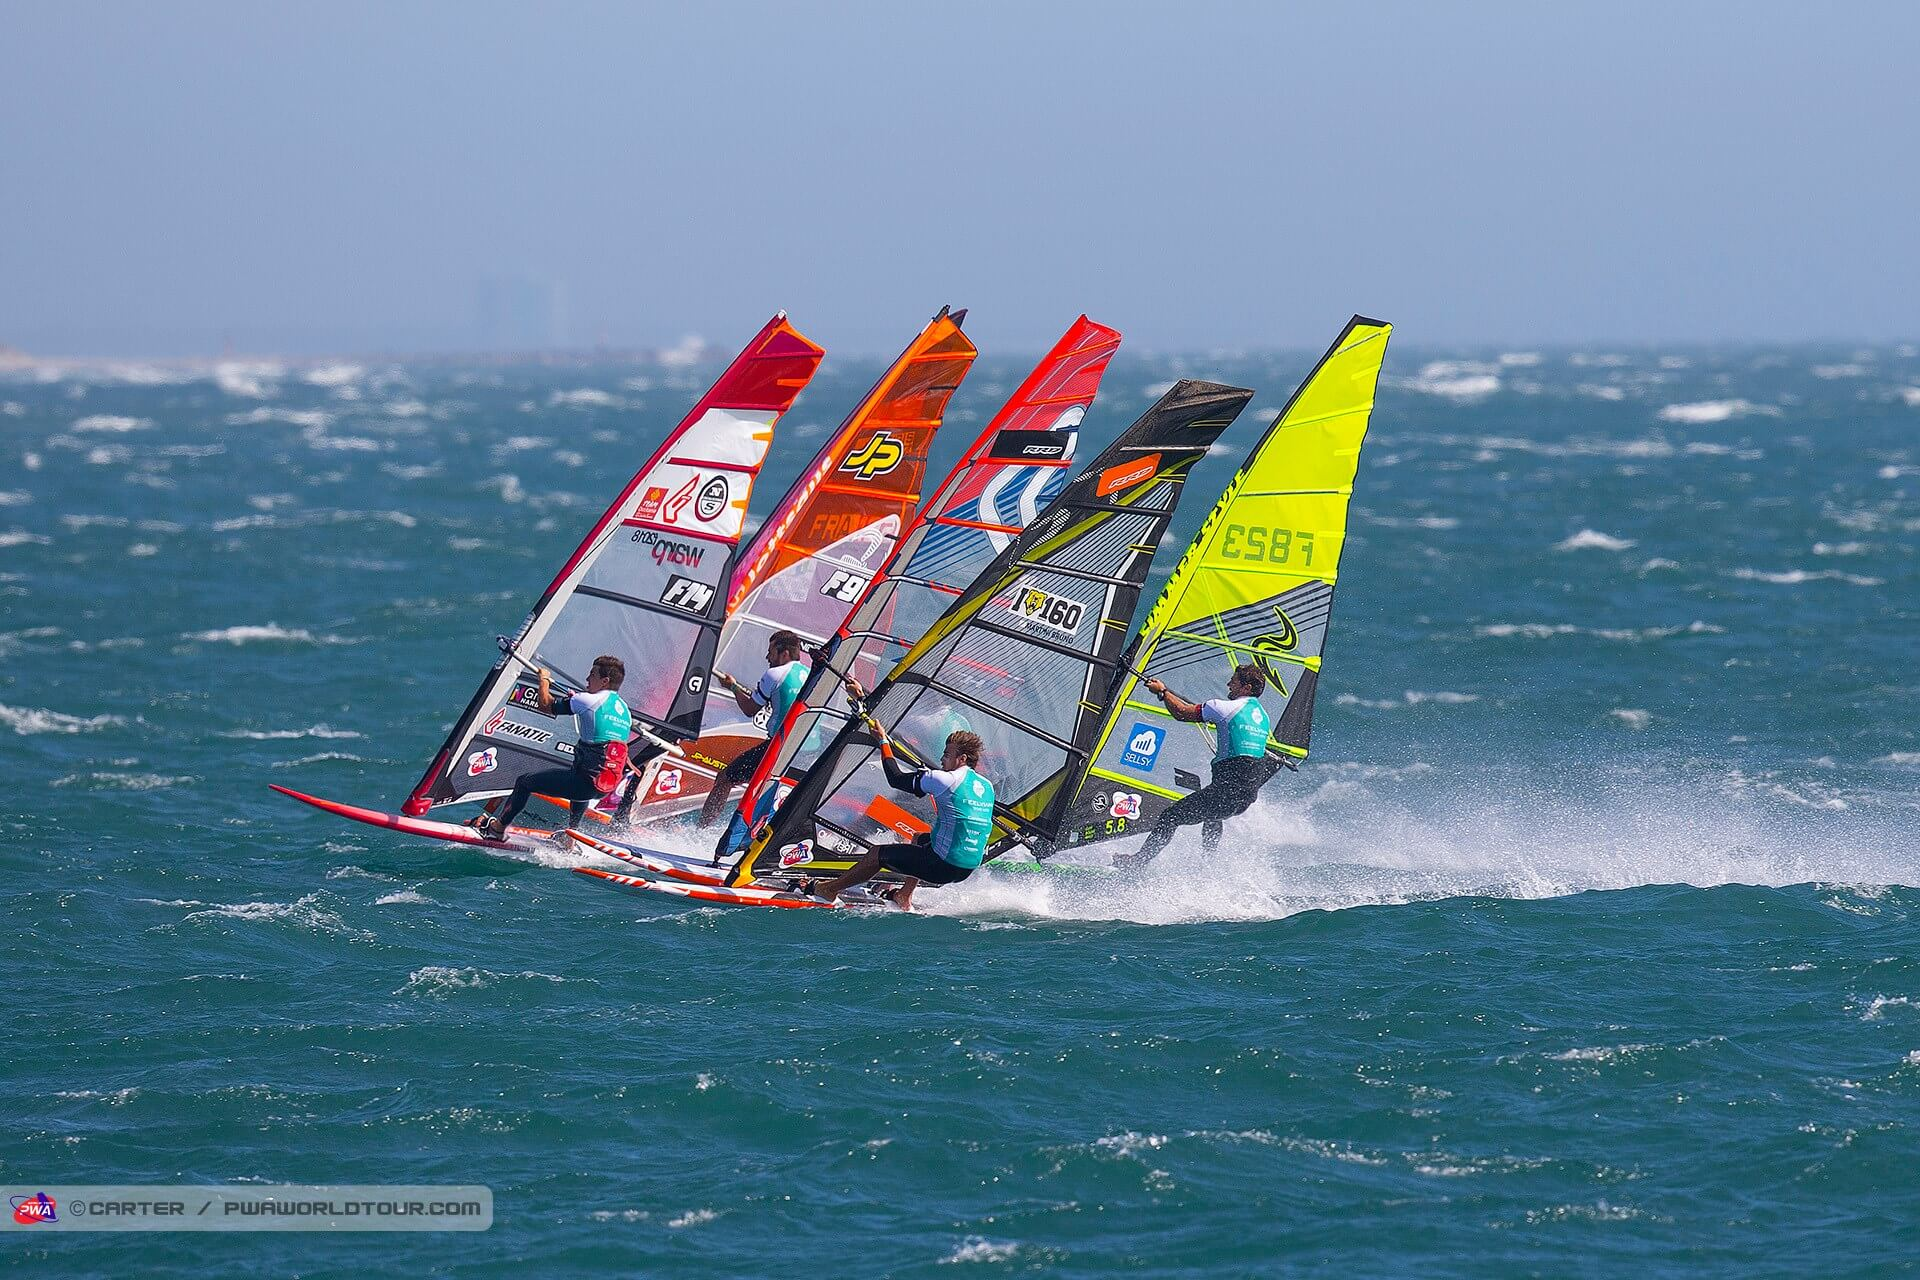 Duotone_Windsurfing_Team_Pierre_Vincent_PWA_Slalom_Event_Portugal